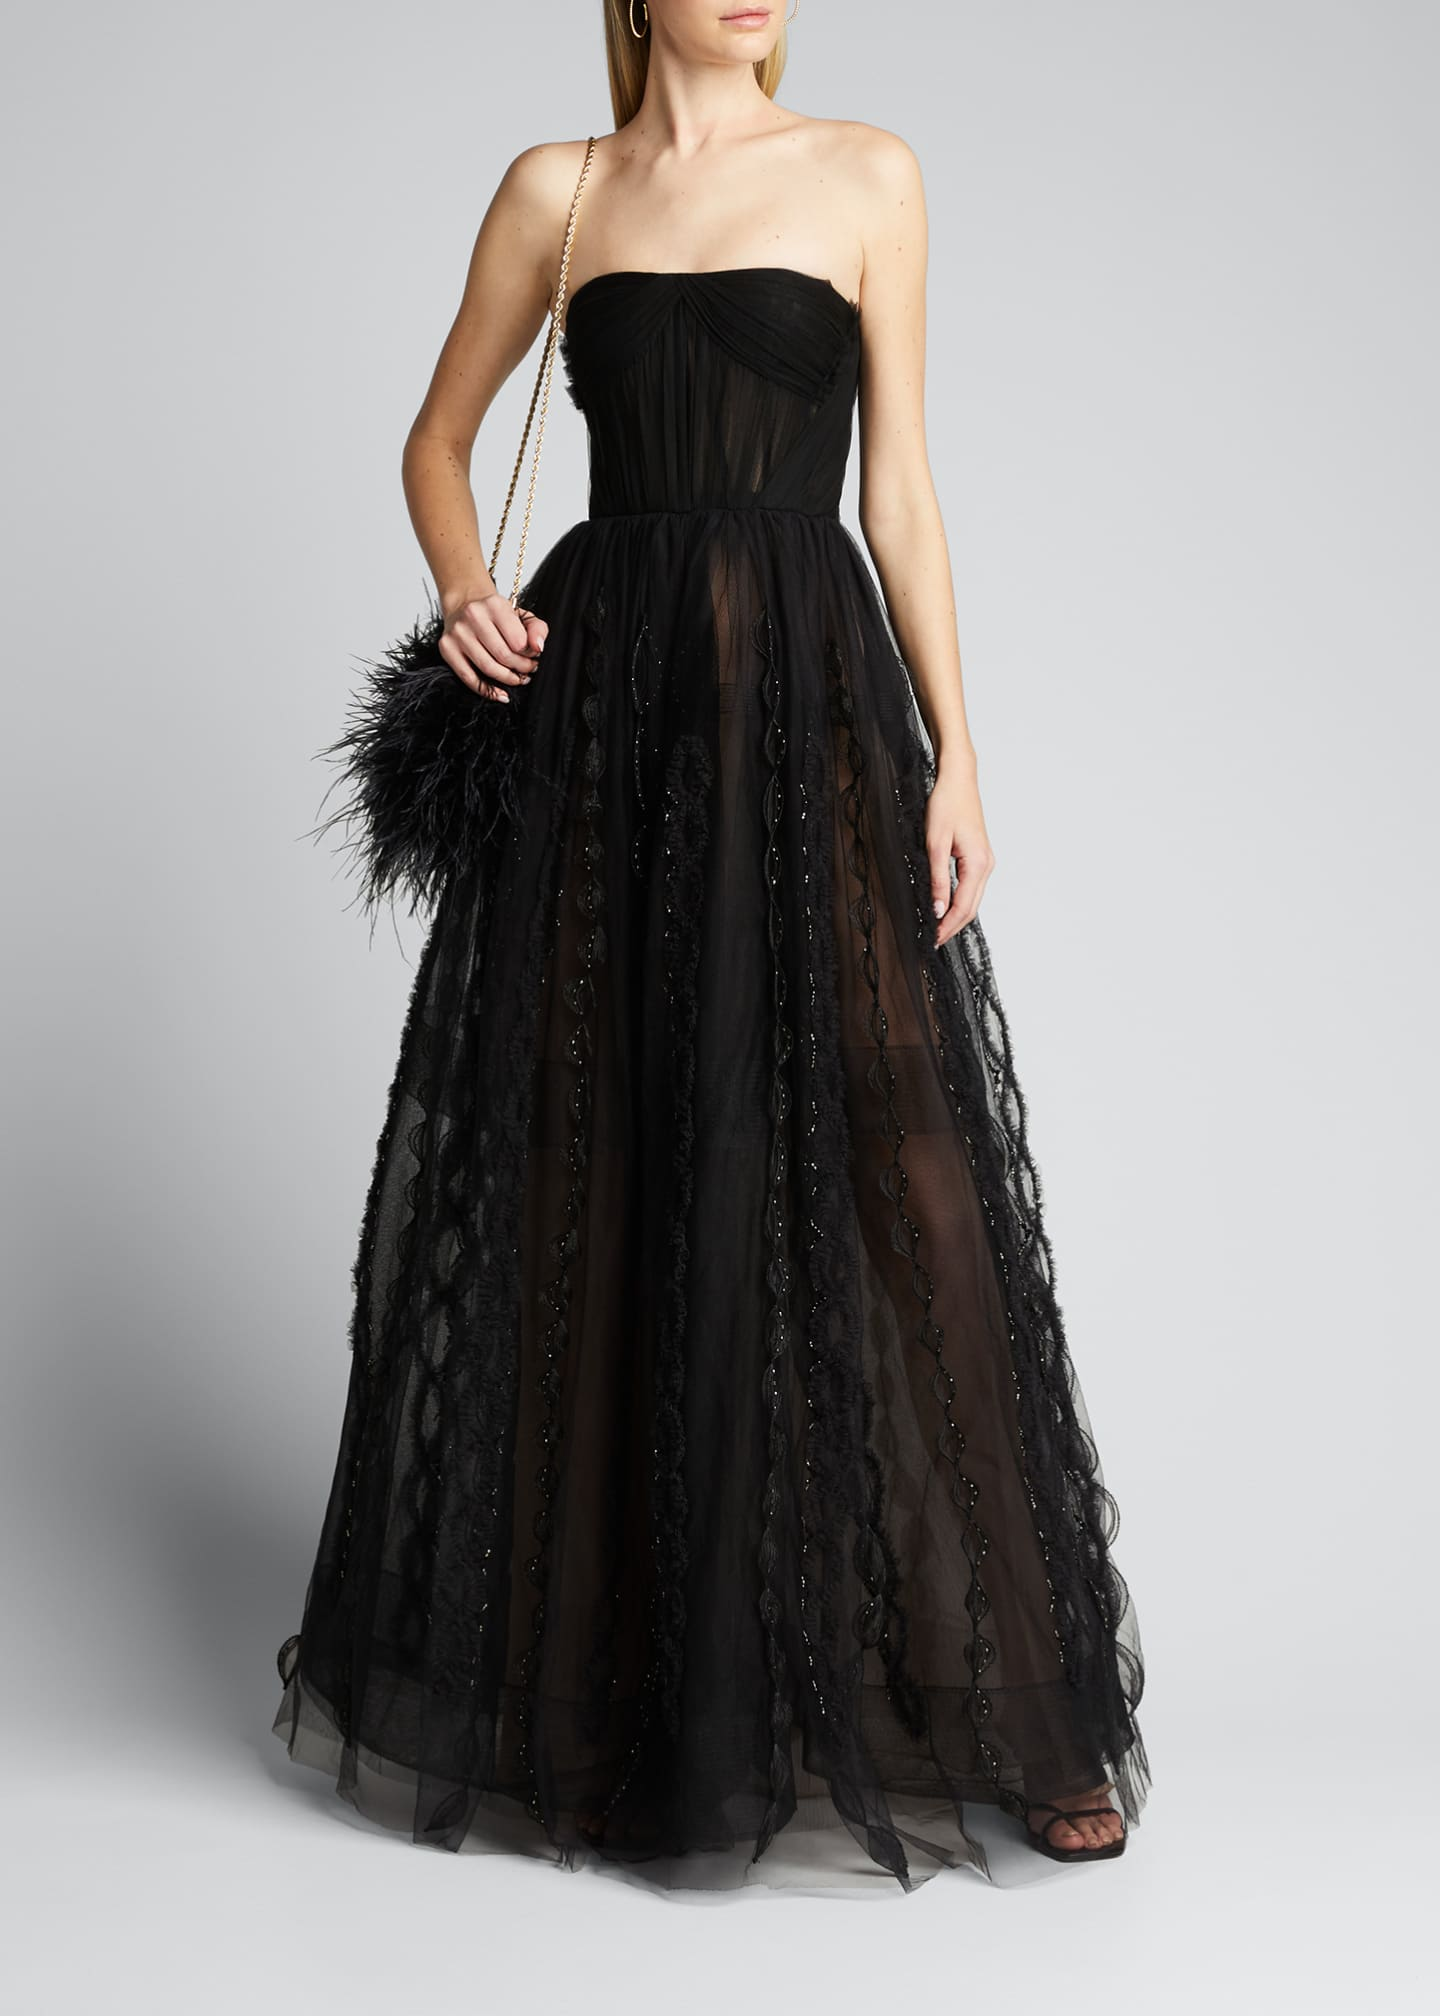 Beaded-Tulle Strapless Gown w/ Bolero Jacket